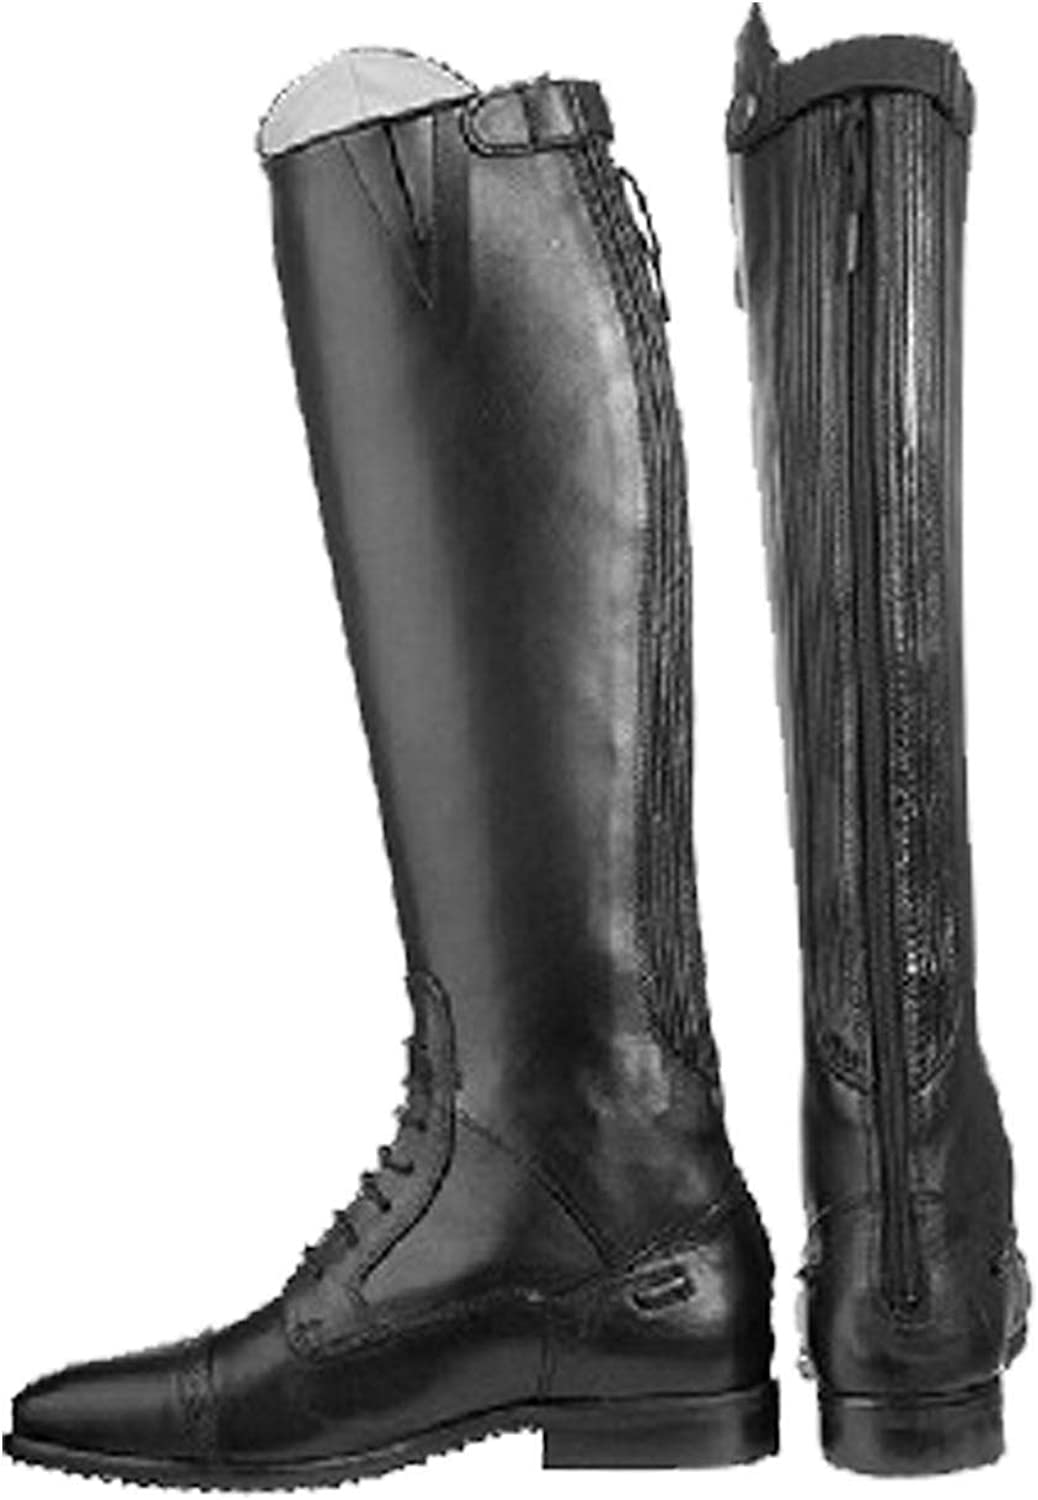 HKM Men's Reitstiefel-Valencia Indianapolis Mall Langlänge Weite Trousers Enge store